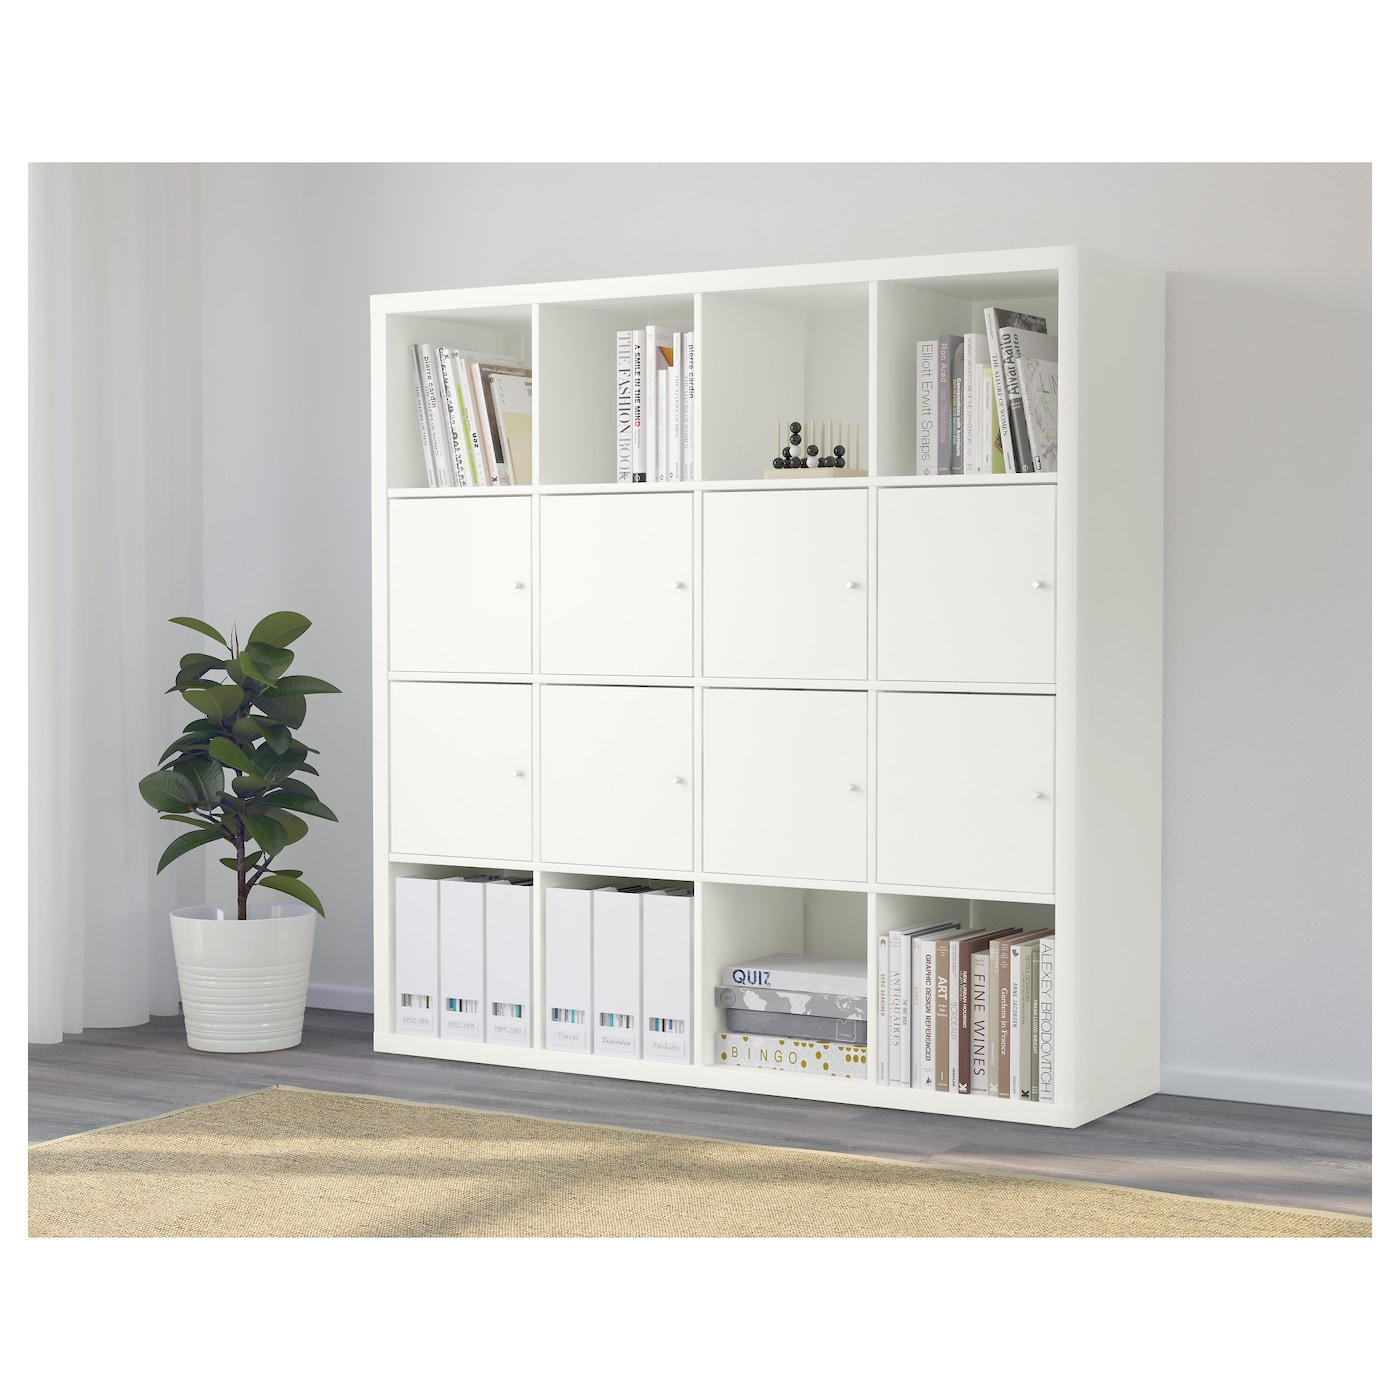 kallax tag re avec 8 accessoires blanc 147x147 cm ikea. Black Bedroom Furniture Sets. Home Design Ideas